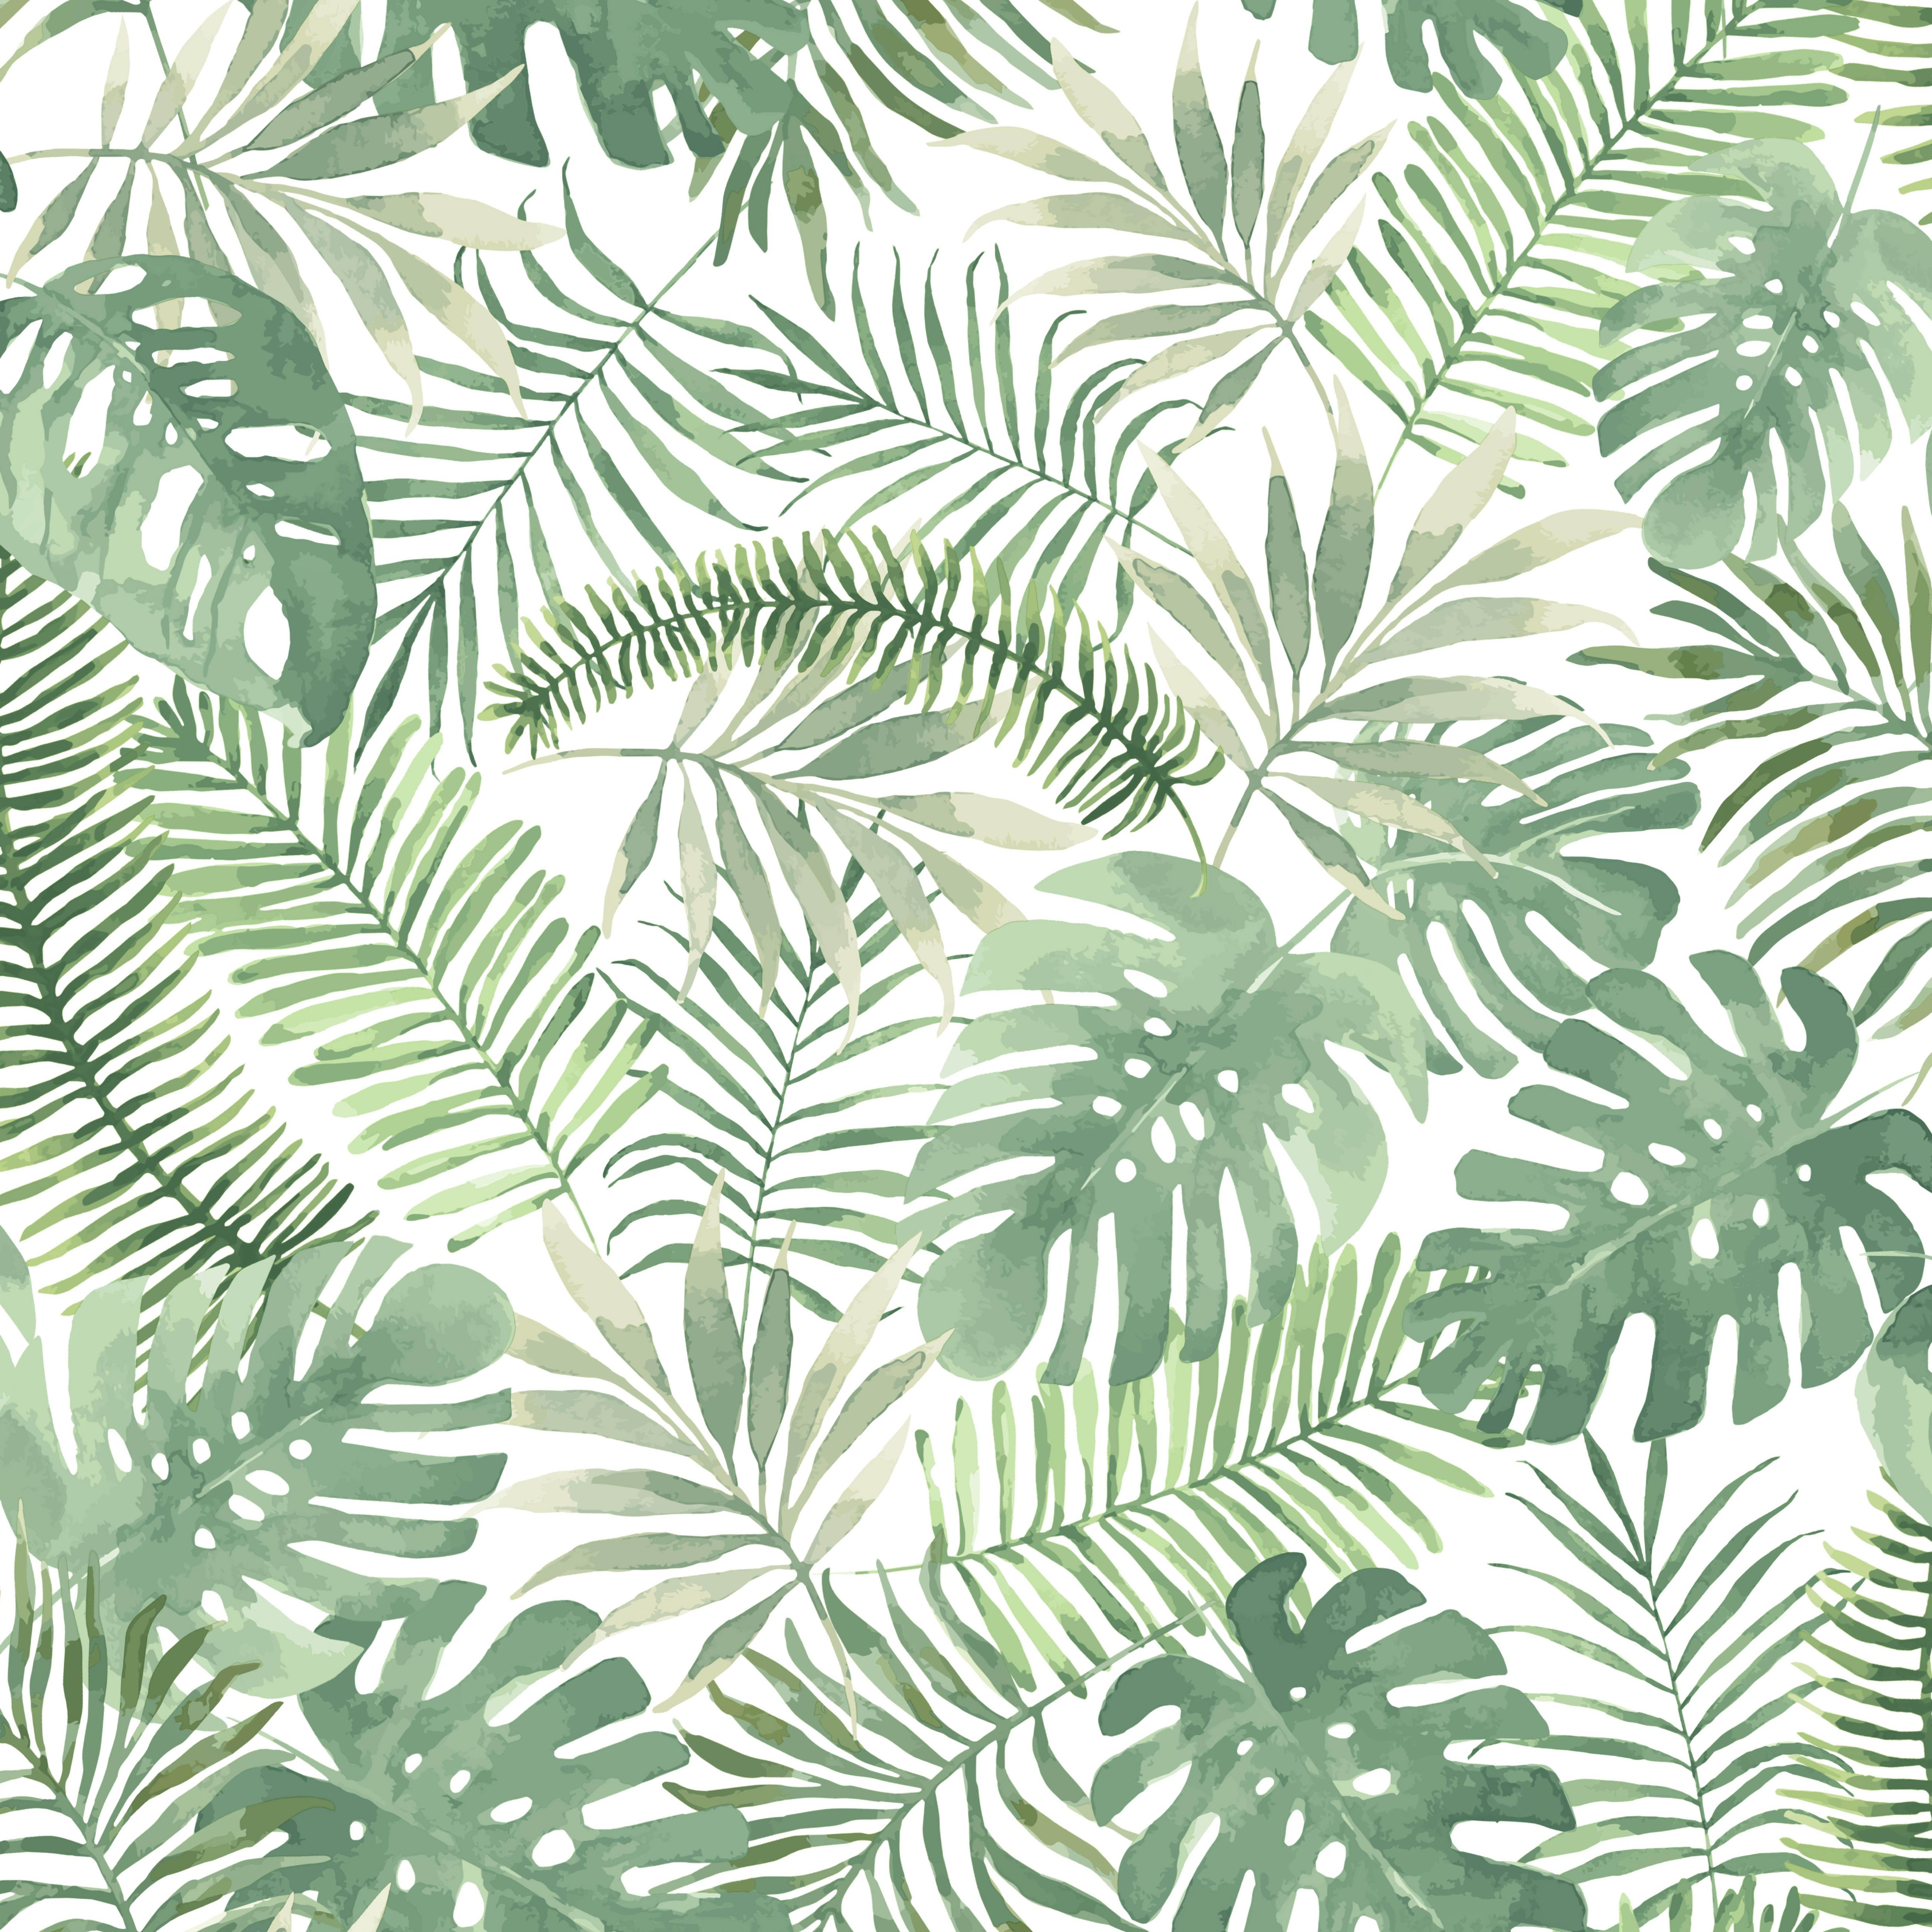 Superfresco Easy Mauritius Green Leaves Matt Wallpaper